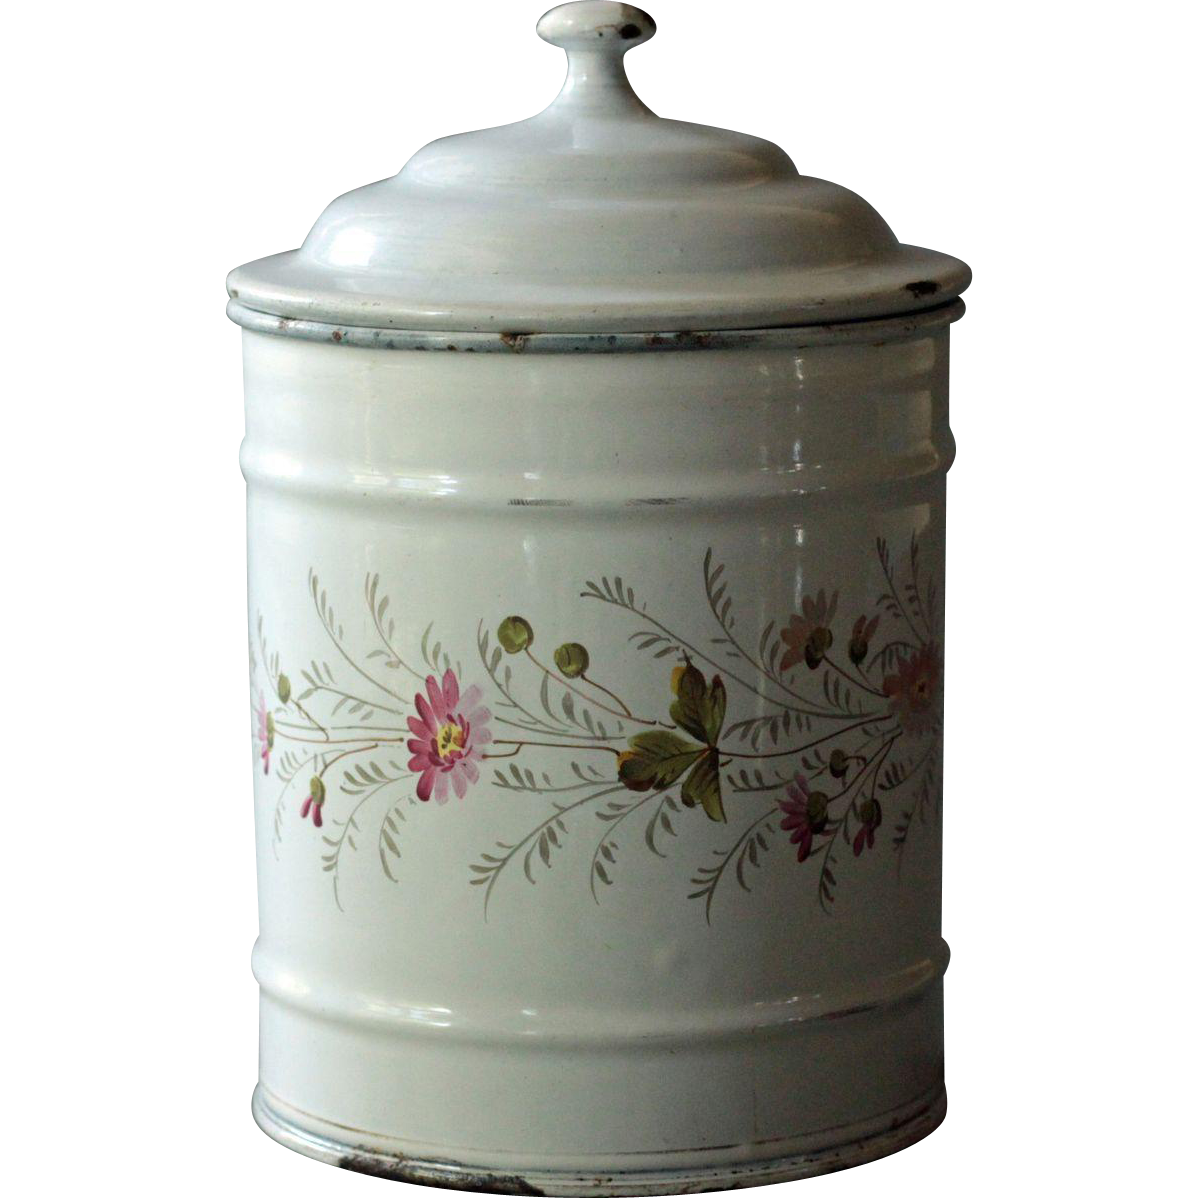 Antique French Enamel Kitchen Canister - C.1900 Floral Enamelware / Graniteware